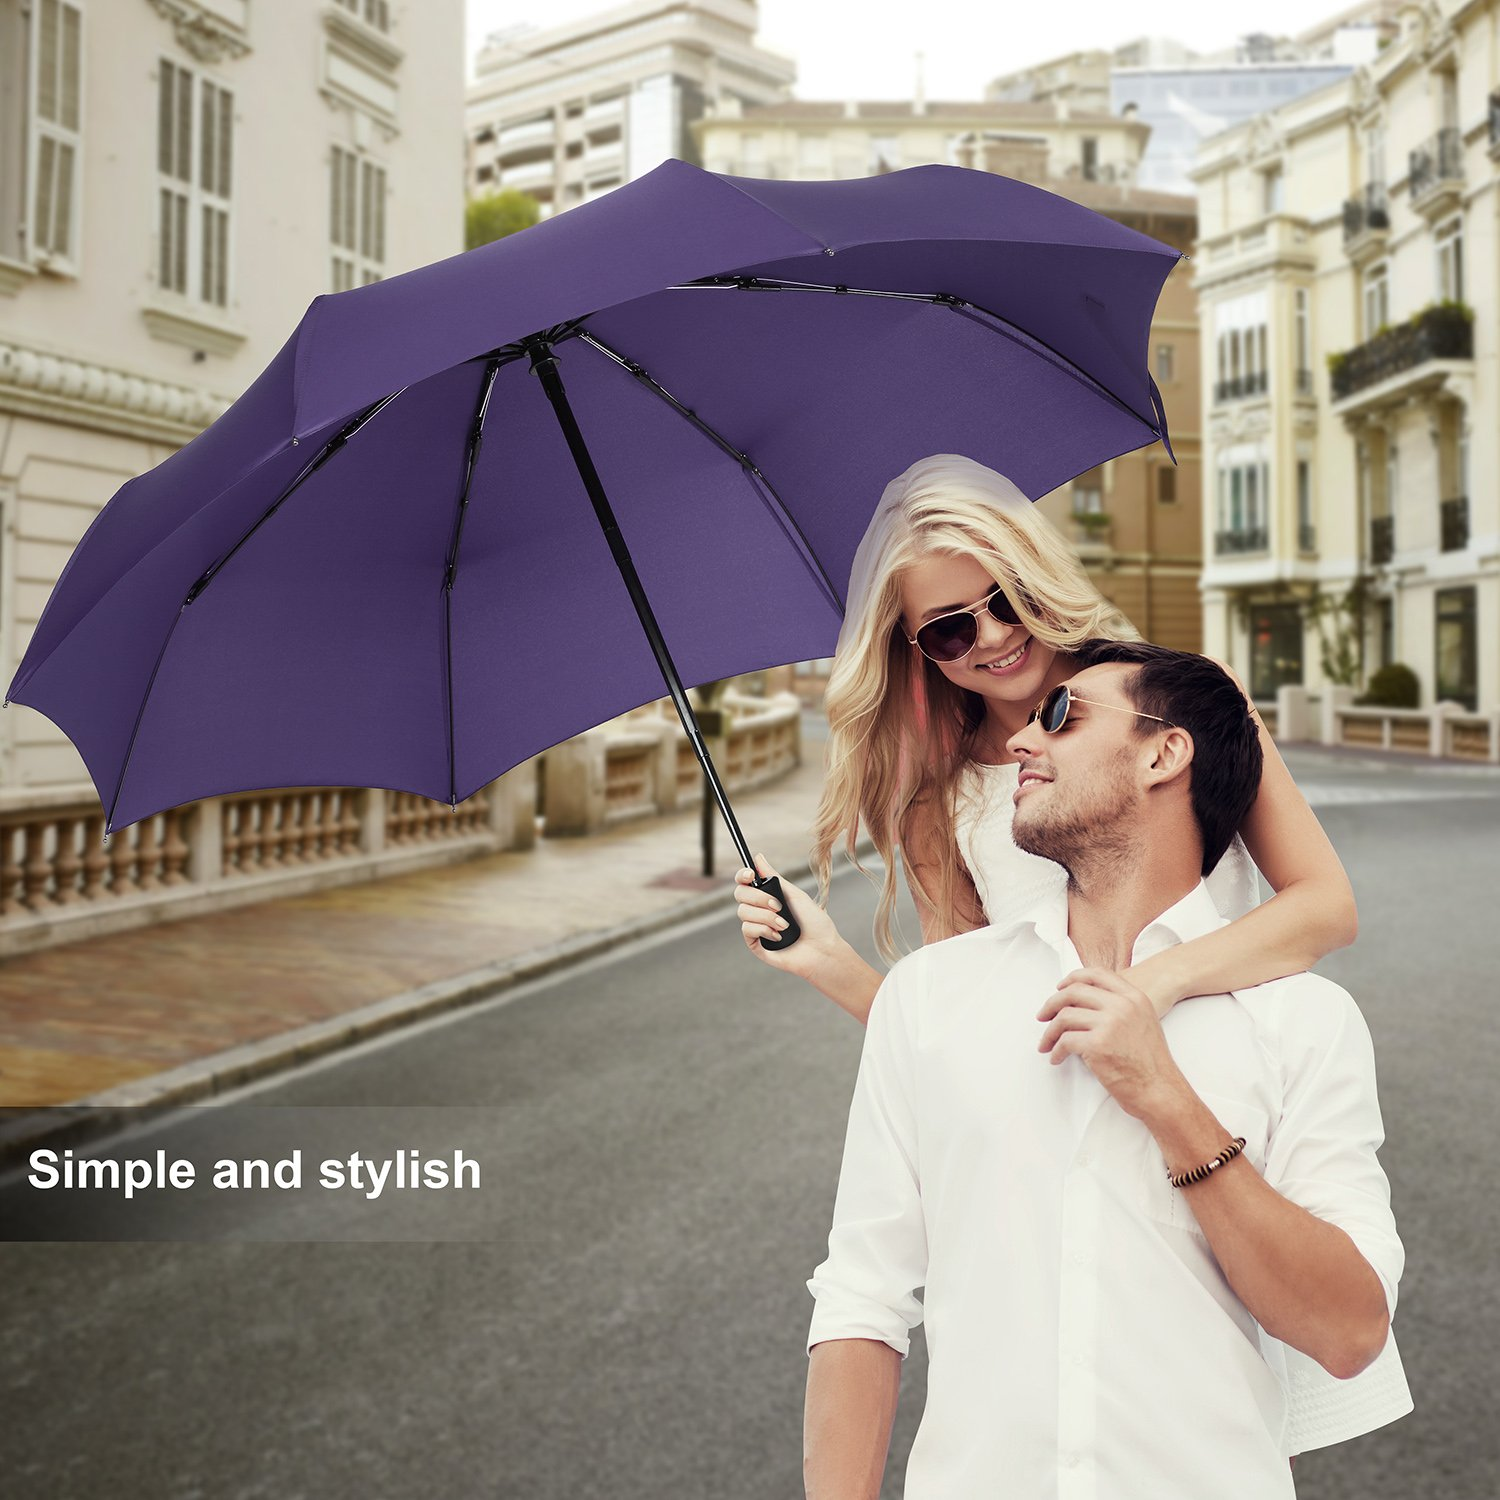 QHUMO Compact Travel Umbrella Windproof, Auto Open Close Umbrellas for Women Men by QHUMO (Image #7)